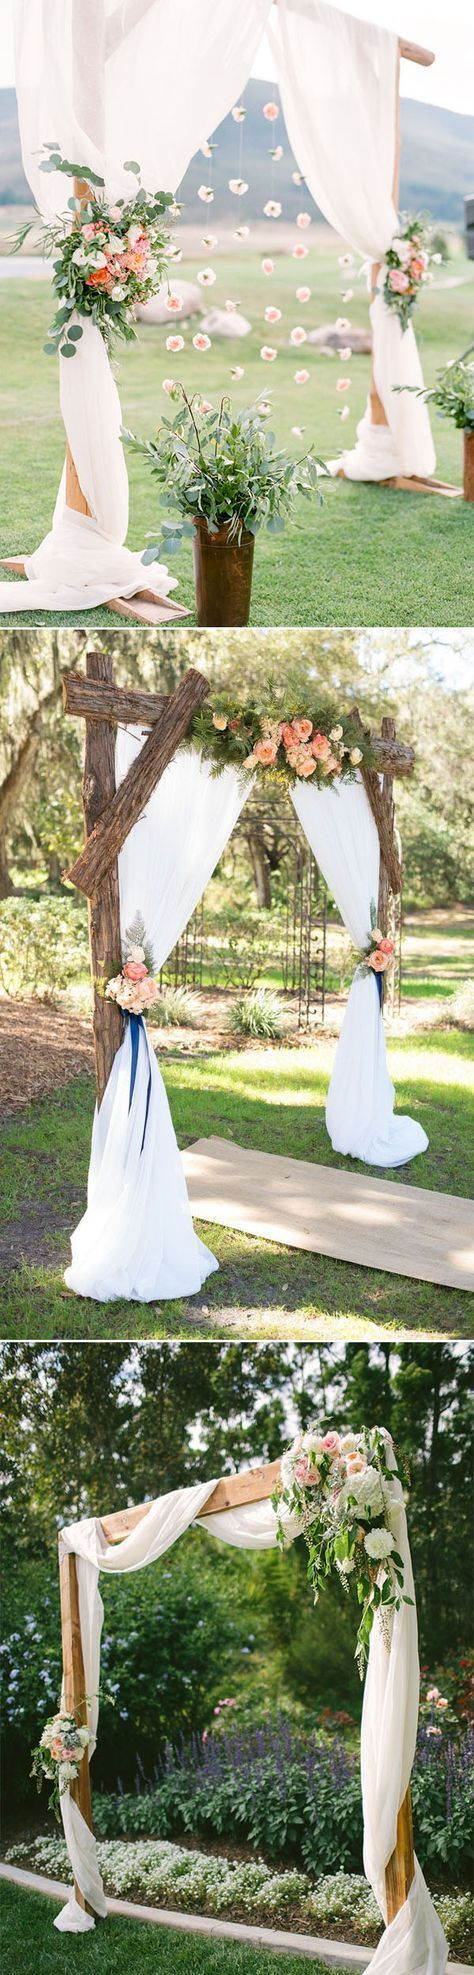 arch wedding decorations best 25 wedding arch tulle ideas on simple 1361